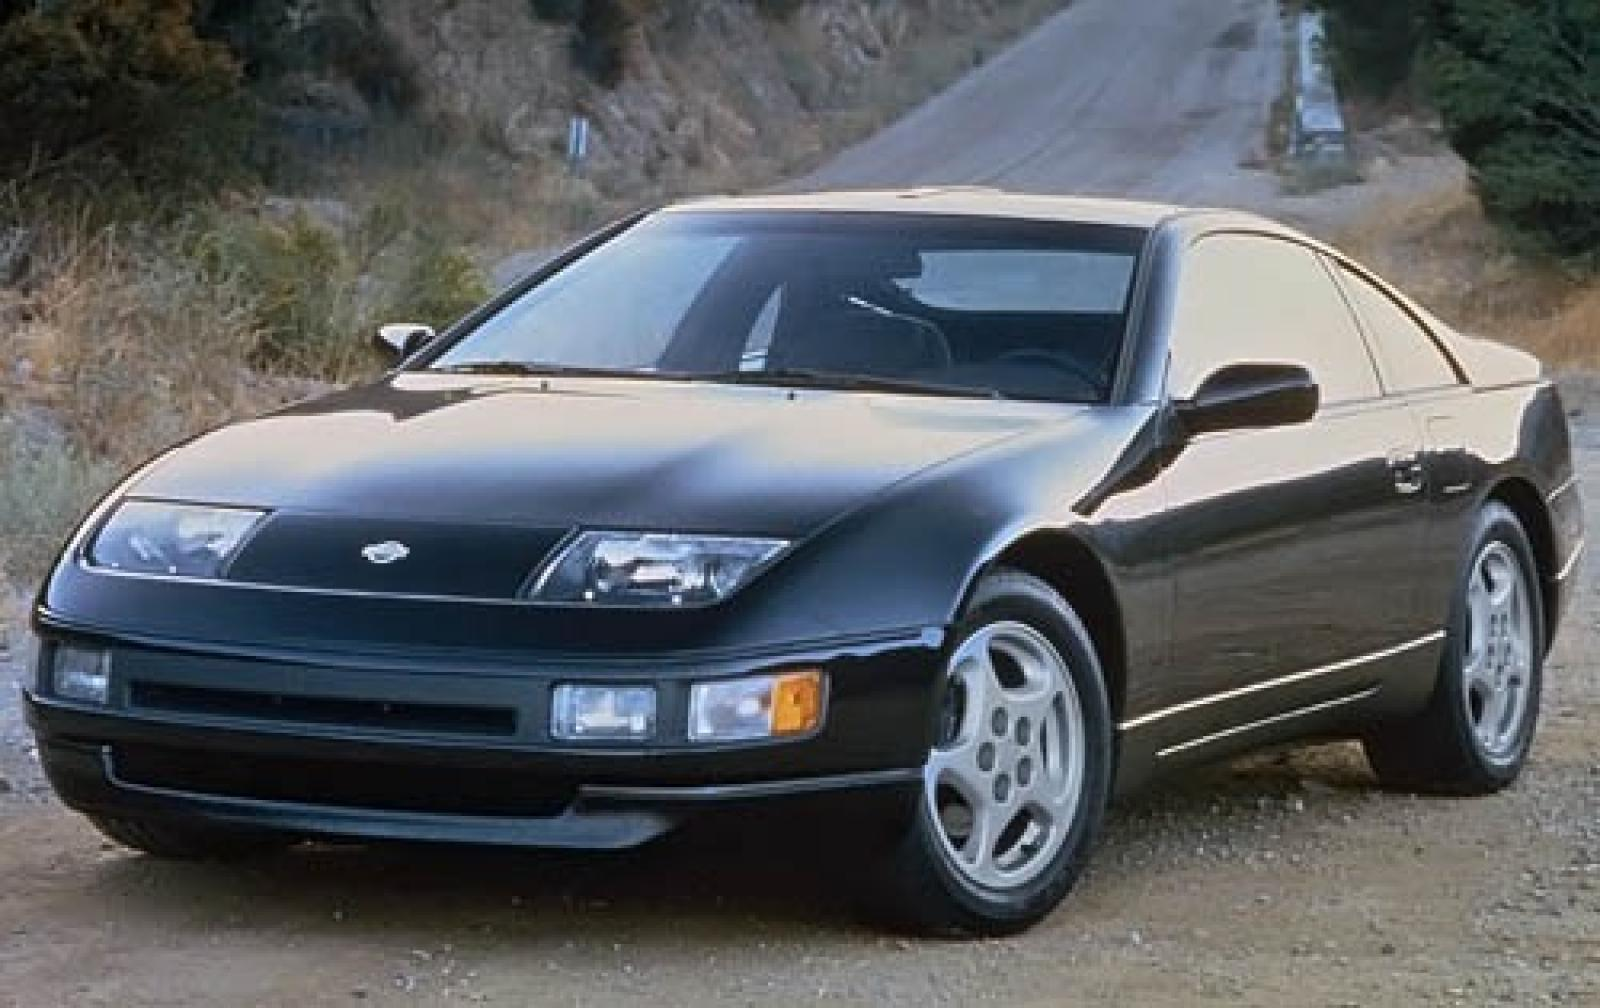 1995 nissan 300zx information and photos zombiedrive. Black Bedroom Furniture Sets. Home Design Ideas